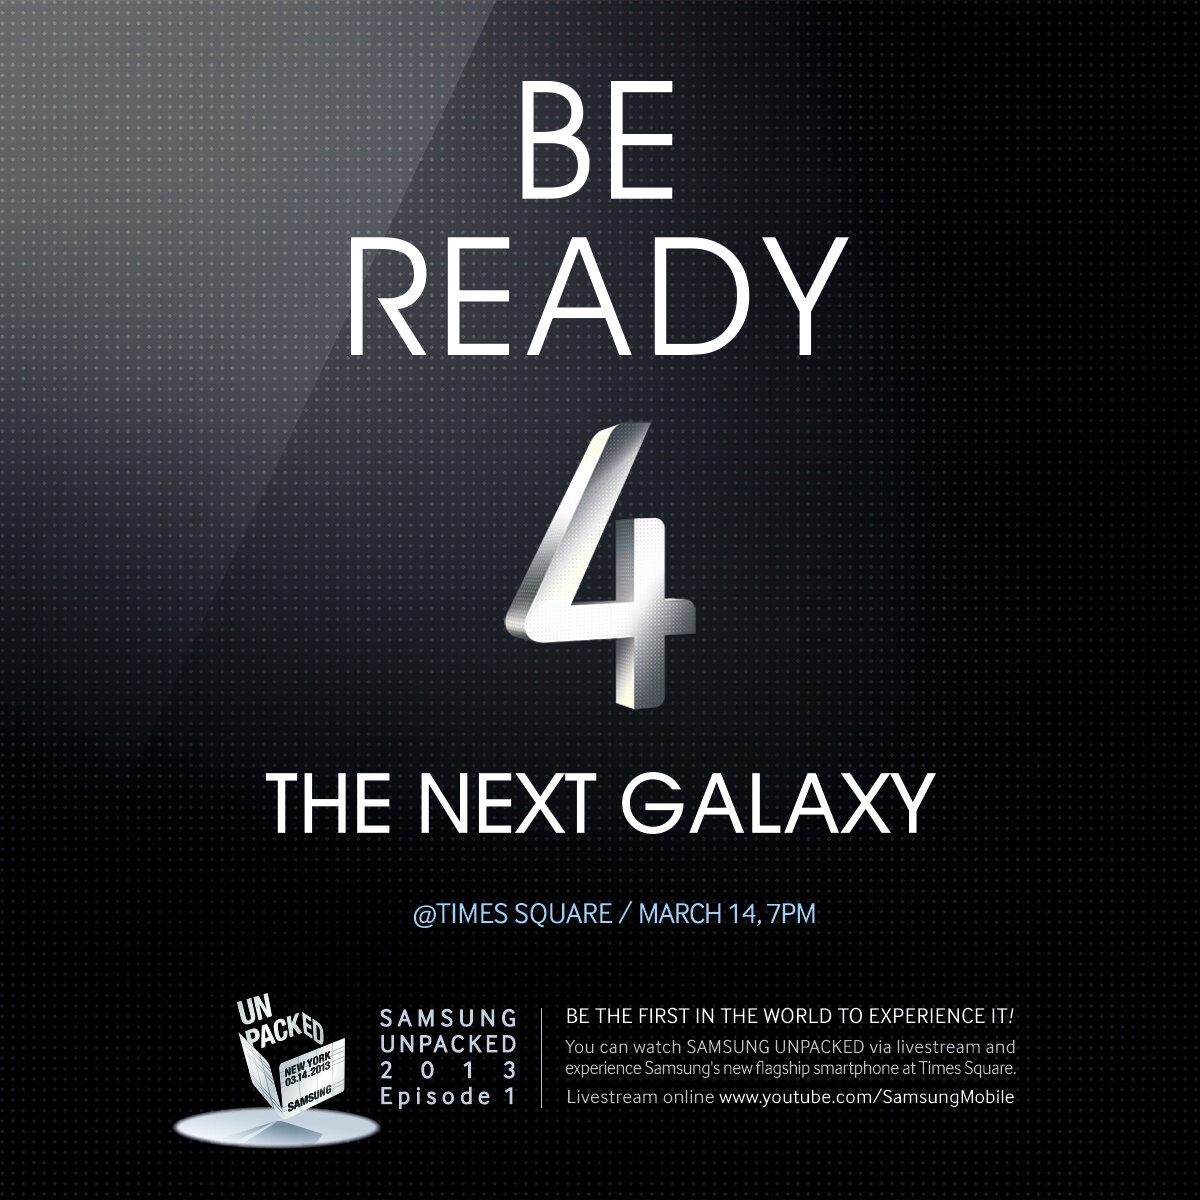 Samsung teases public event in Times Square for the Galaxy S IV launch